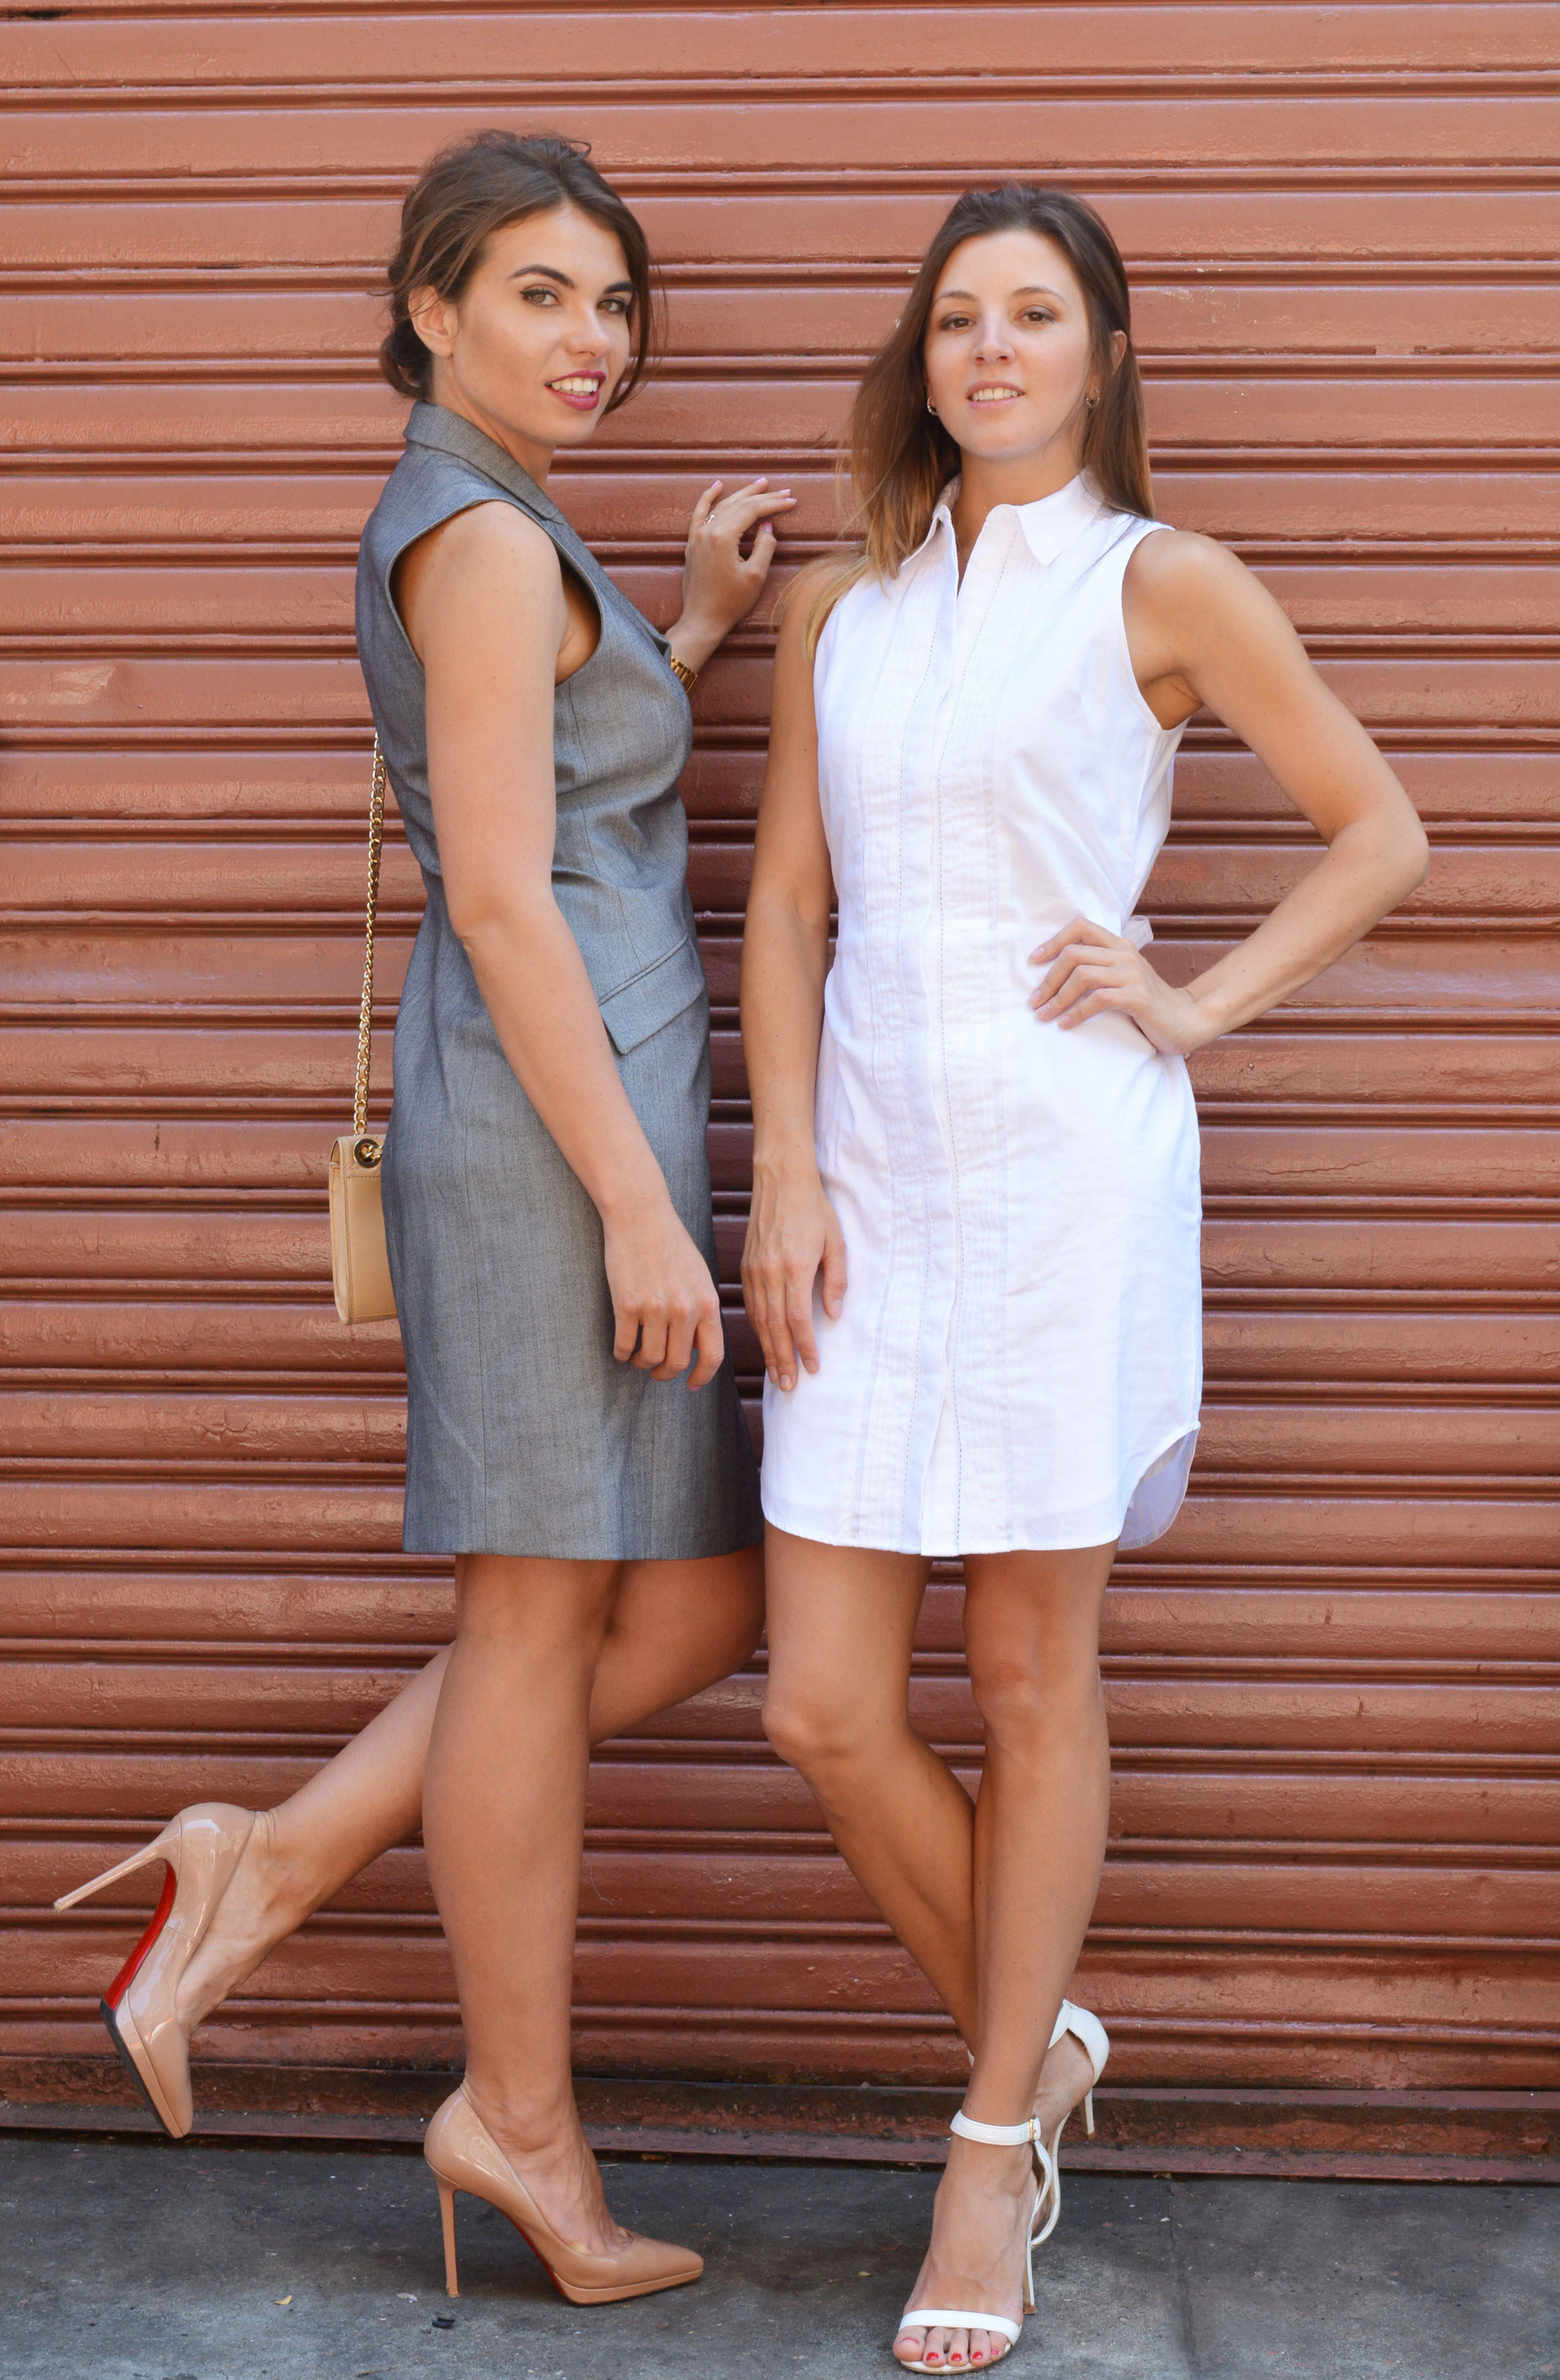 Dresses from Banana Republic